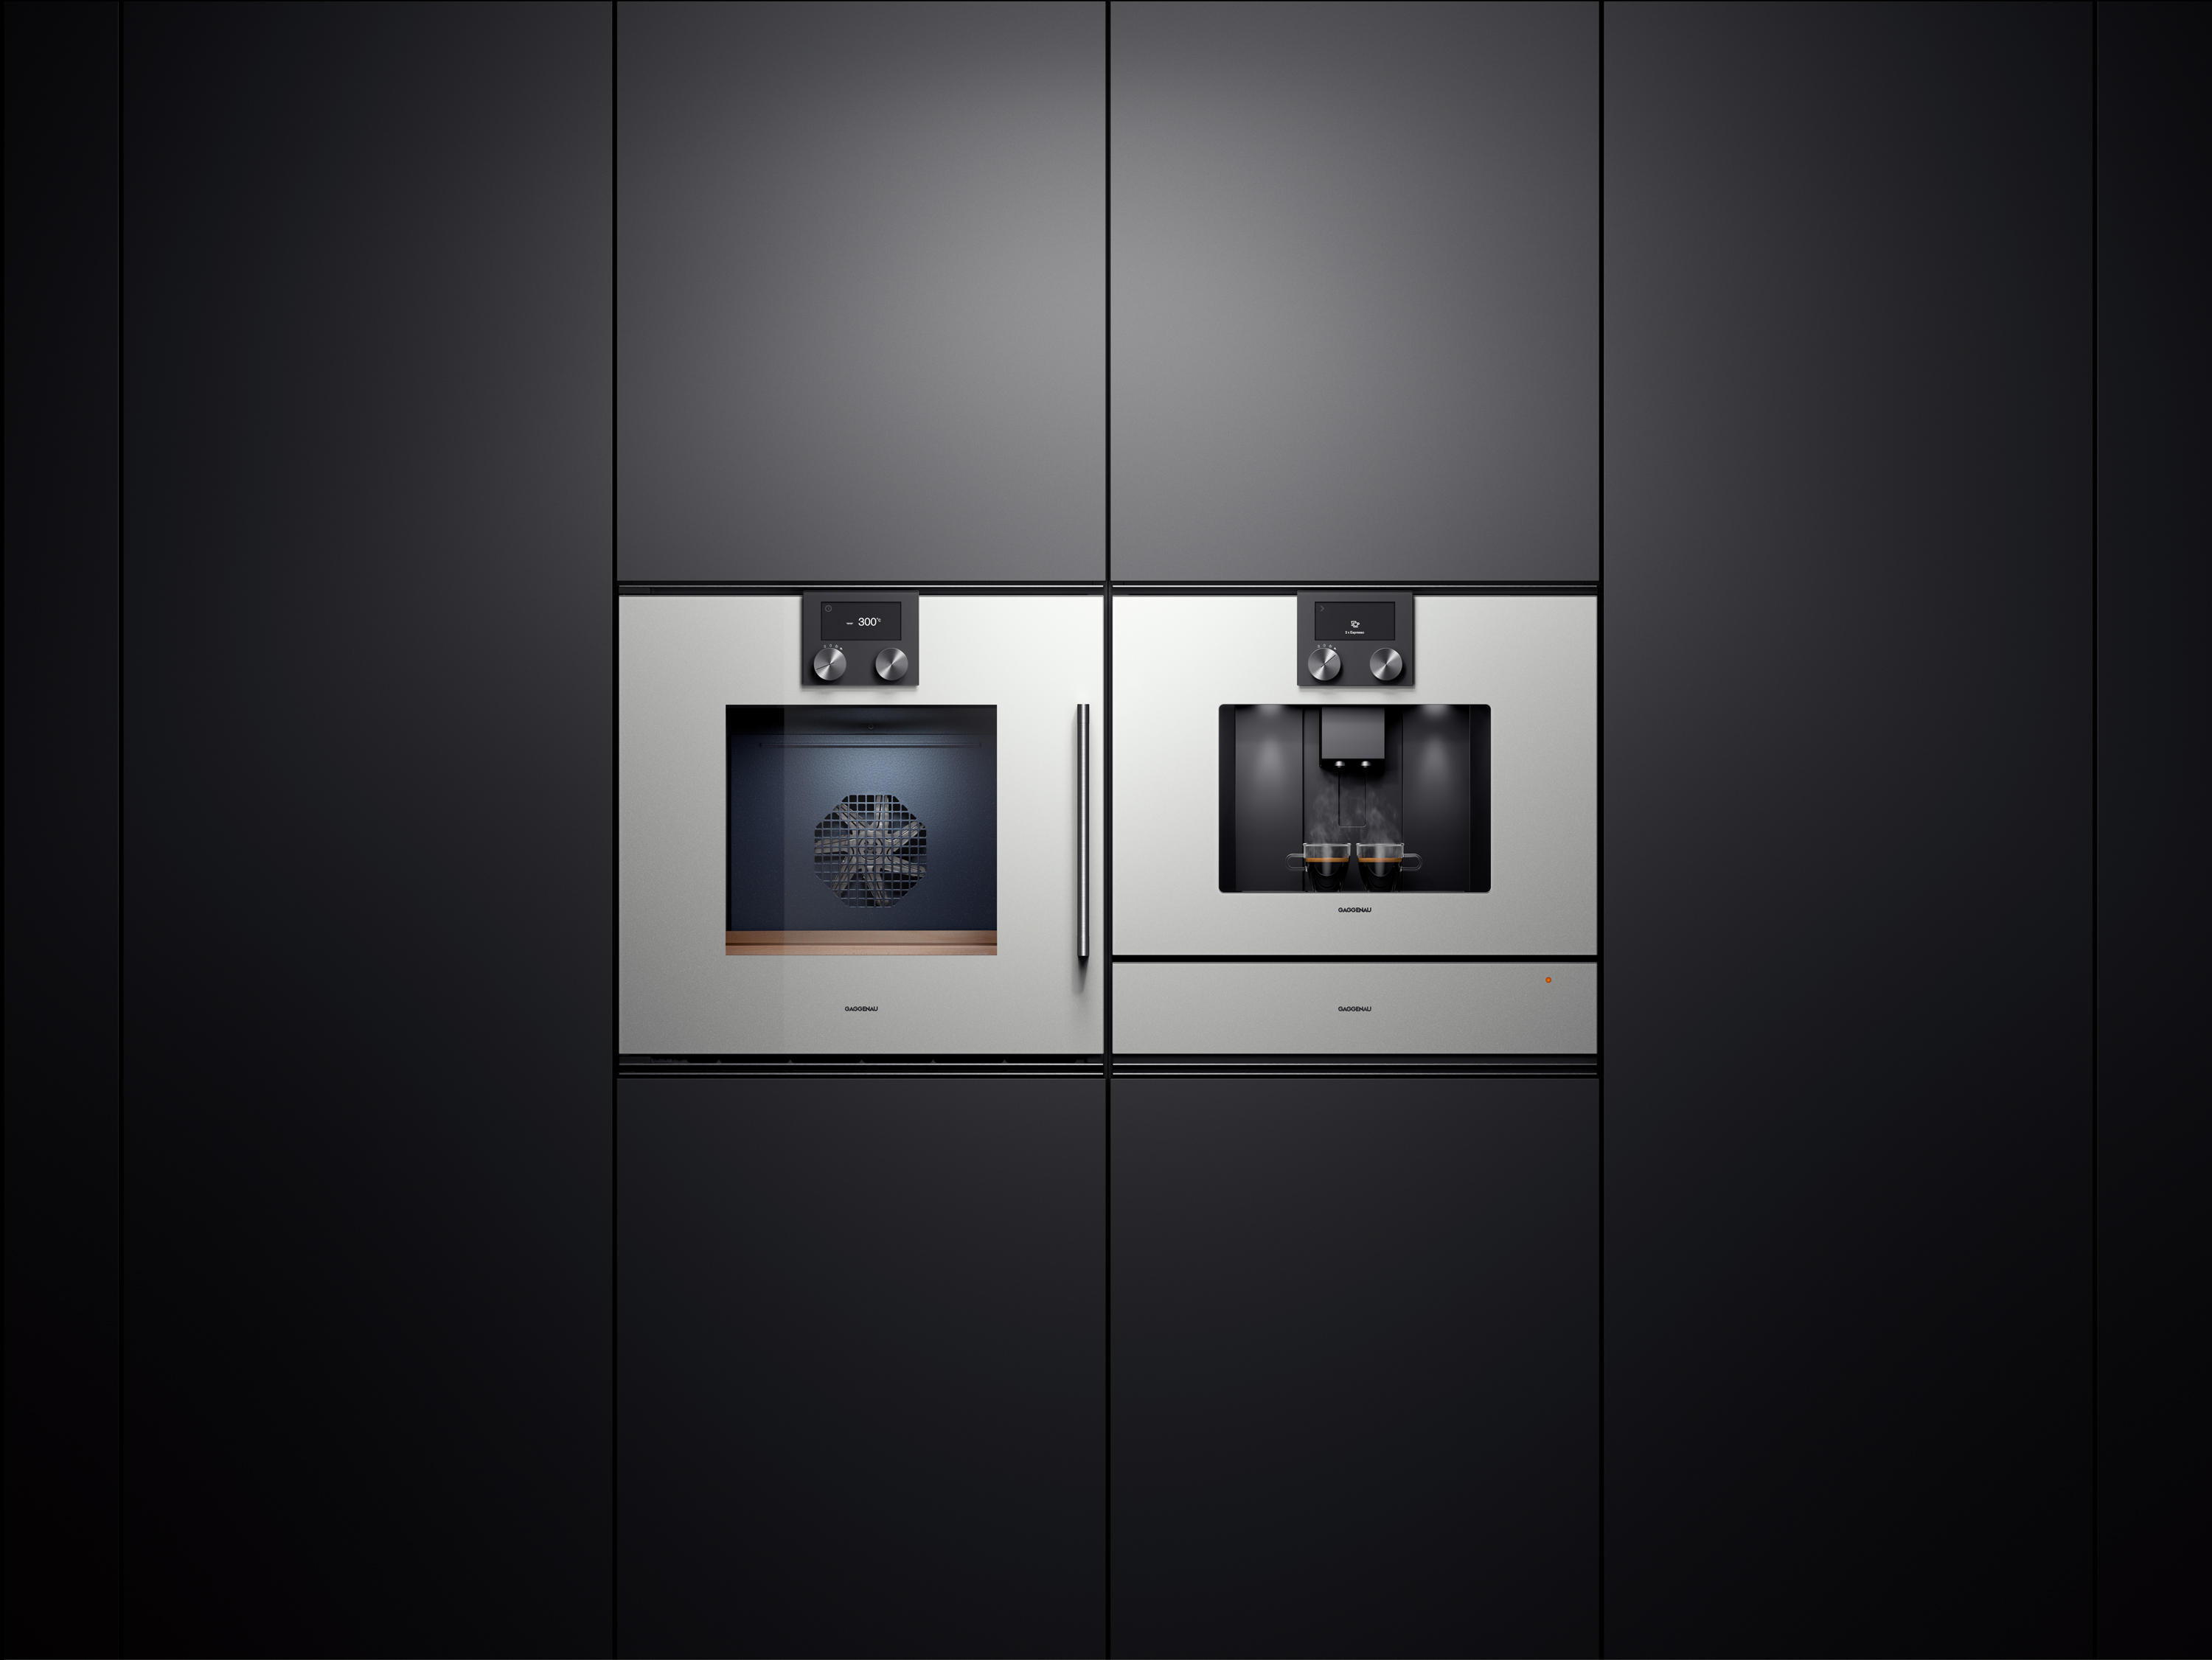 espresso vollautomat serie 200 cm 270 coffee machines from gaggenau architonic. Black Bedroom Furniture Sets. Home Design Ideas